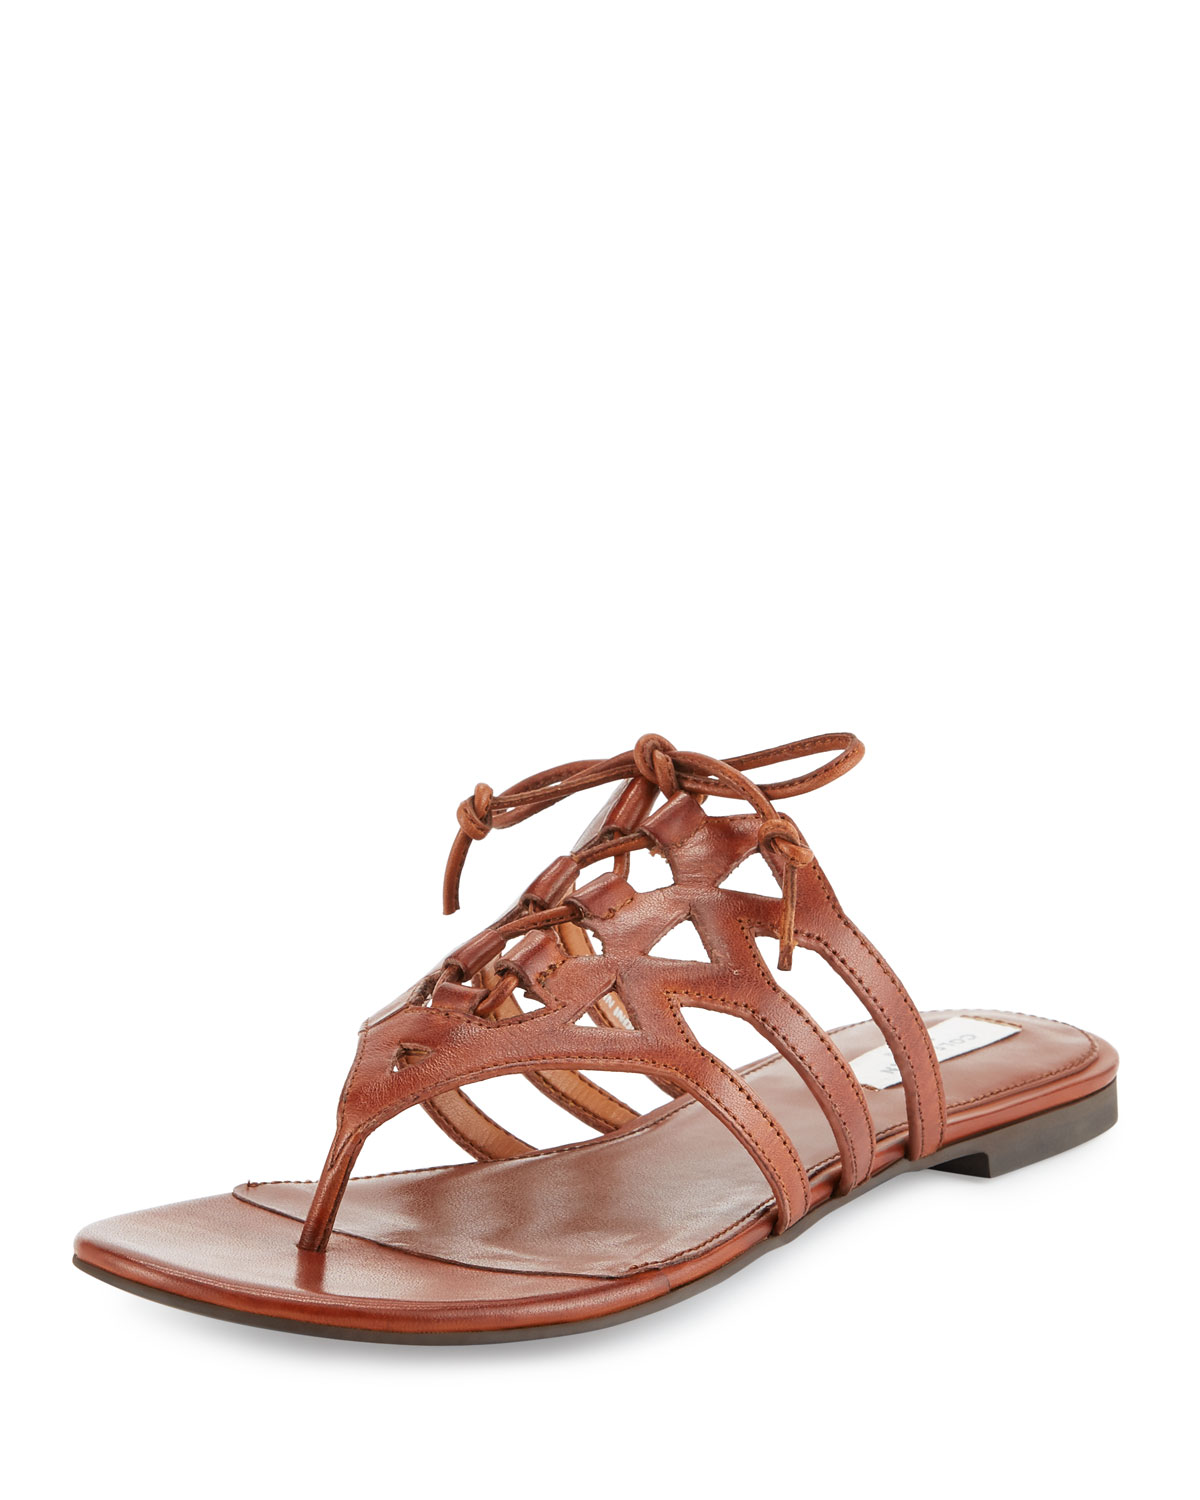 Cole Haan Claudia Sandal(Women's) -Black Leather